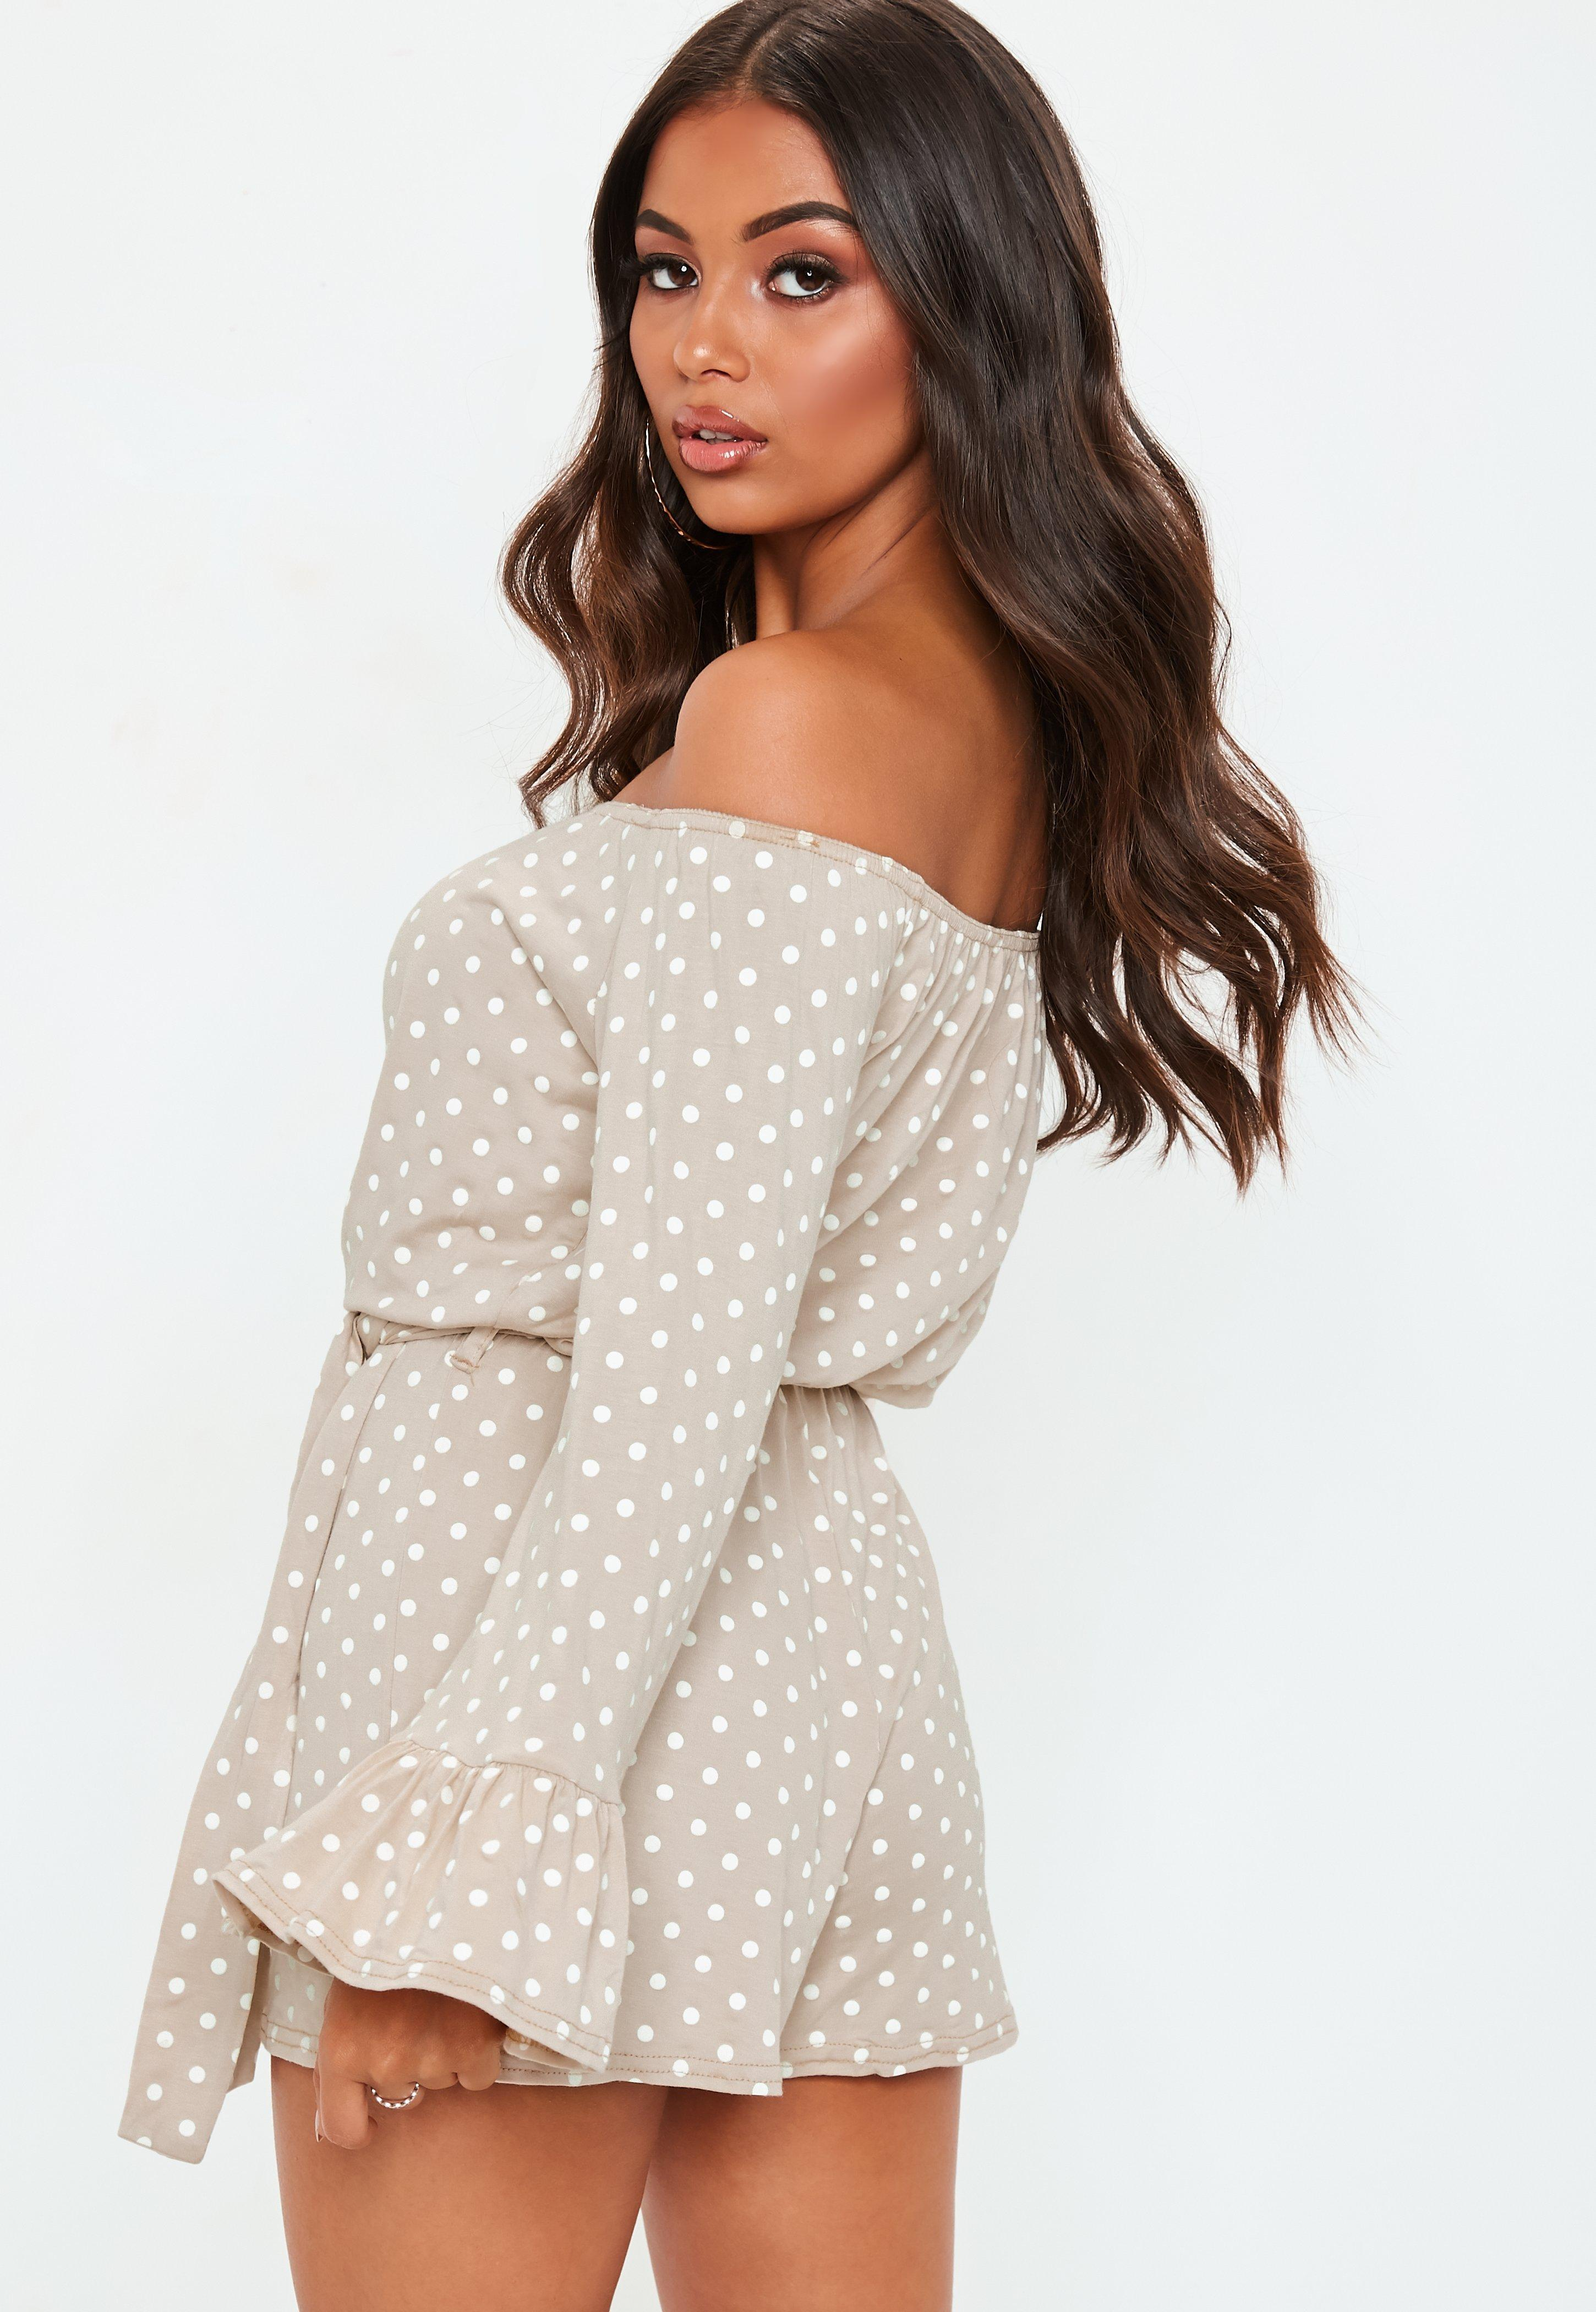 5d00f9d10419 Missguided Nude Polka Dot Bardot Tie Waist Jersey Playsuit in ...